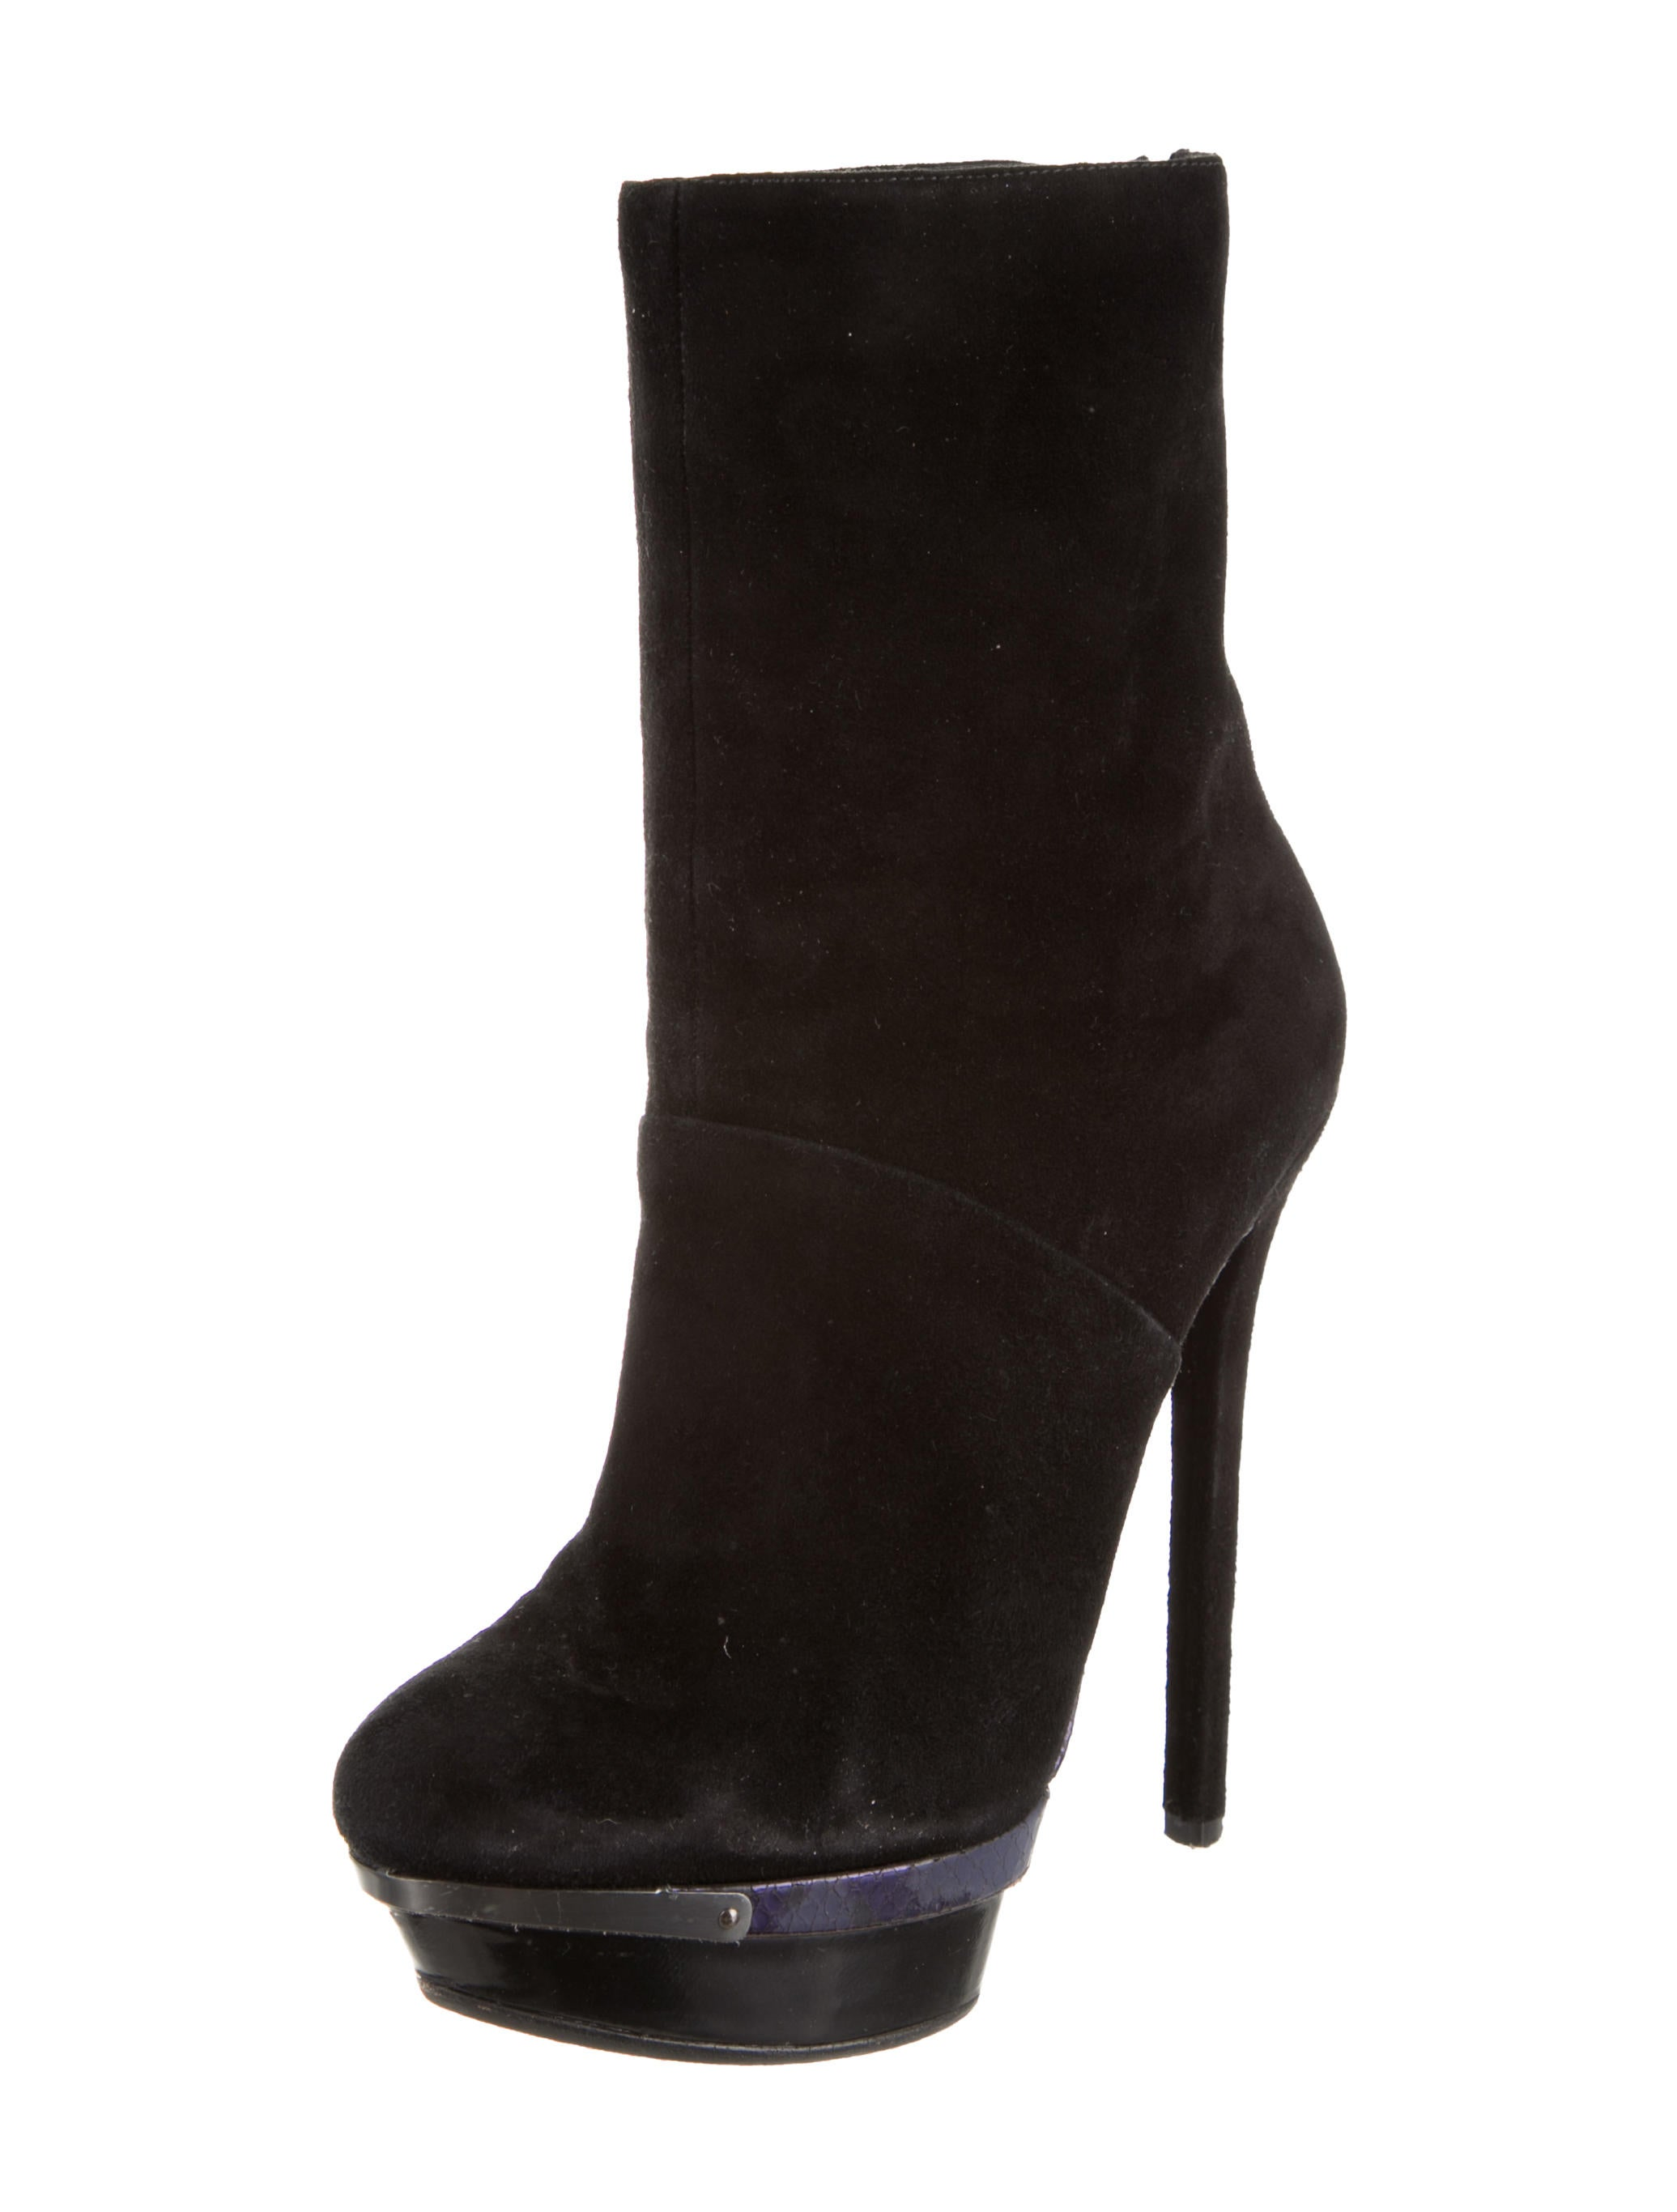 brian atwood suede ankle boots shoes bri21864 the